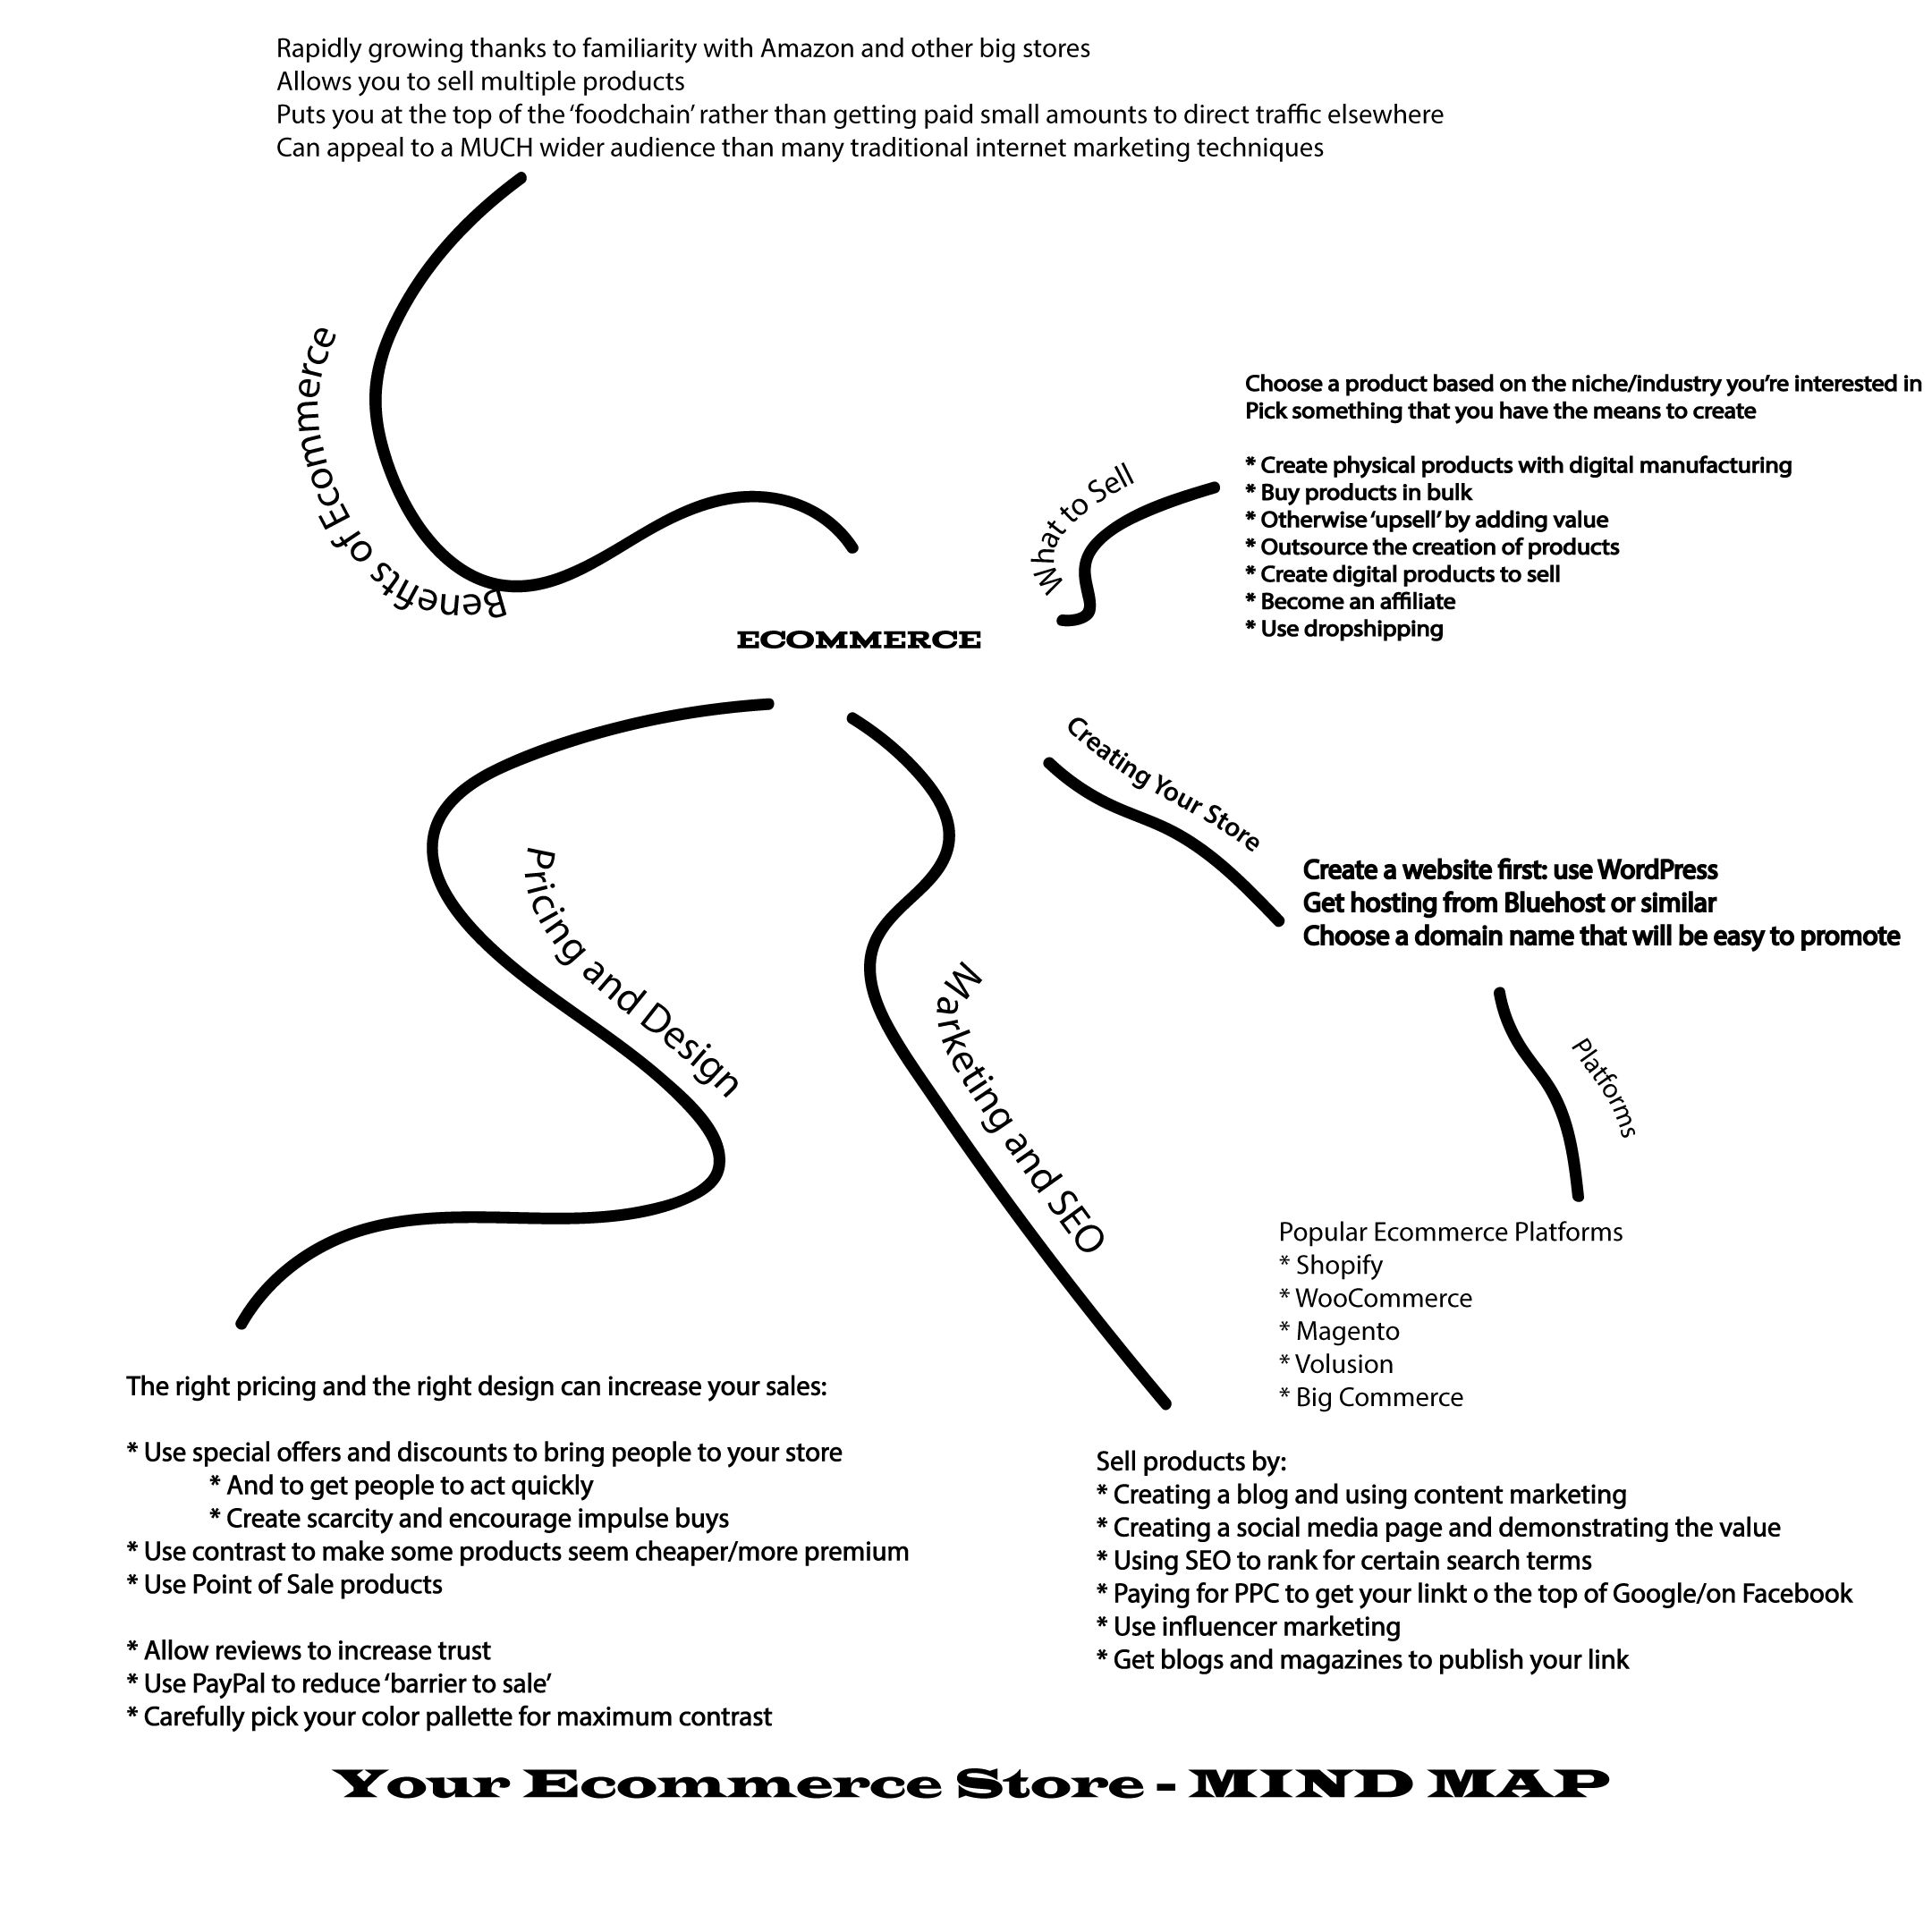 MIND MAP – YOUR ECOMMERCE STORE